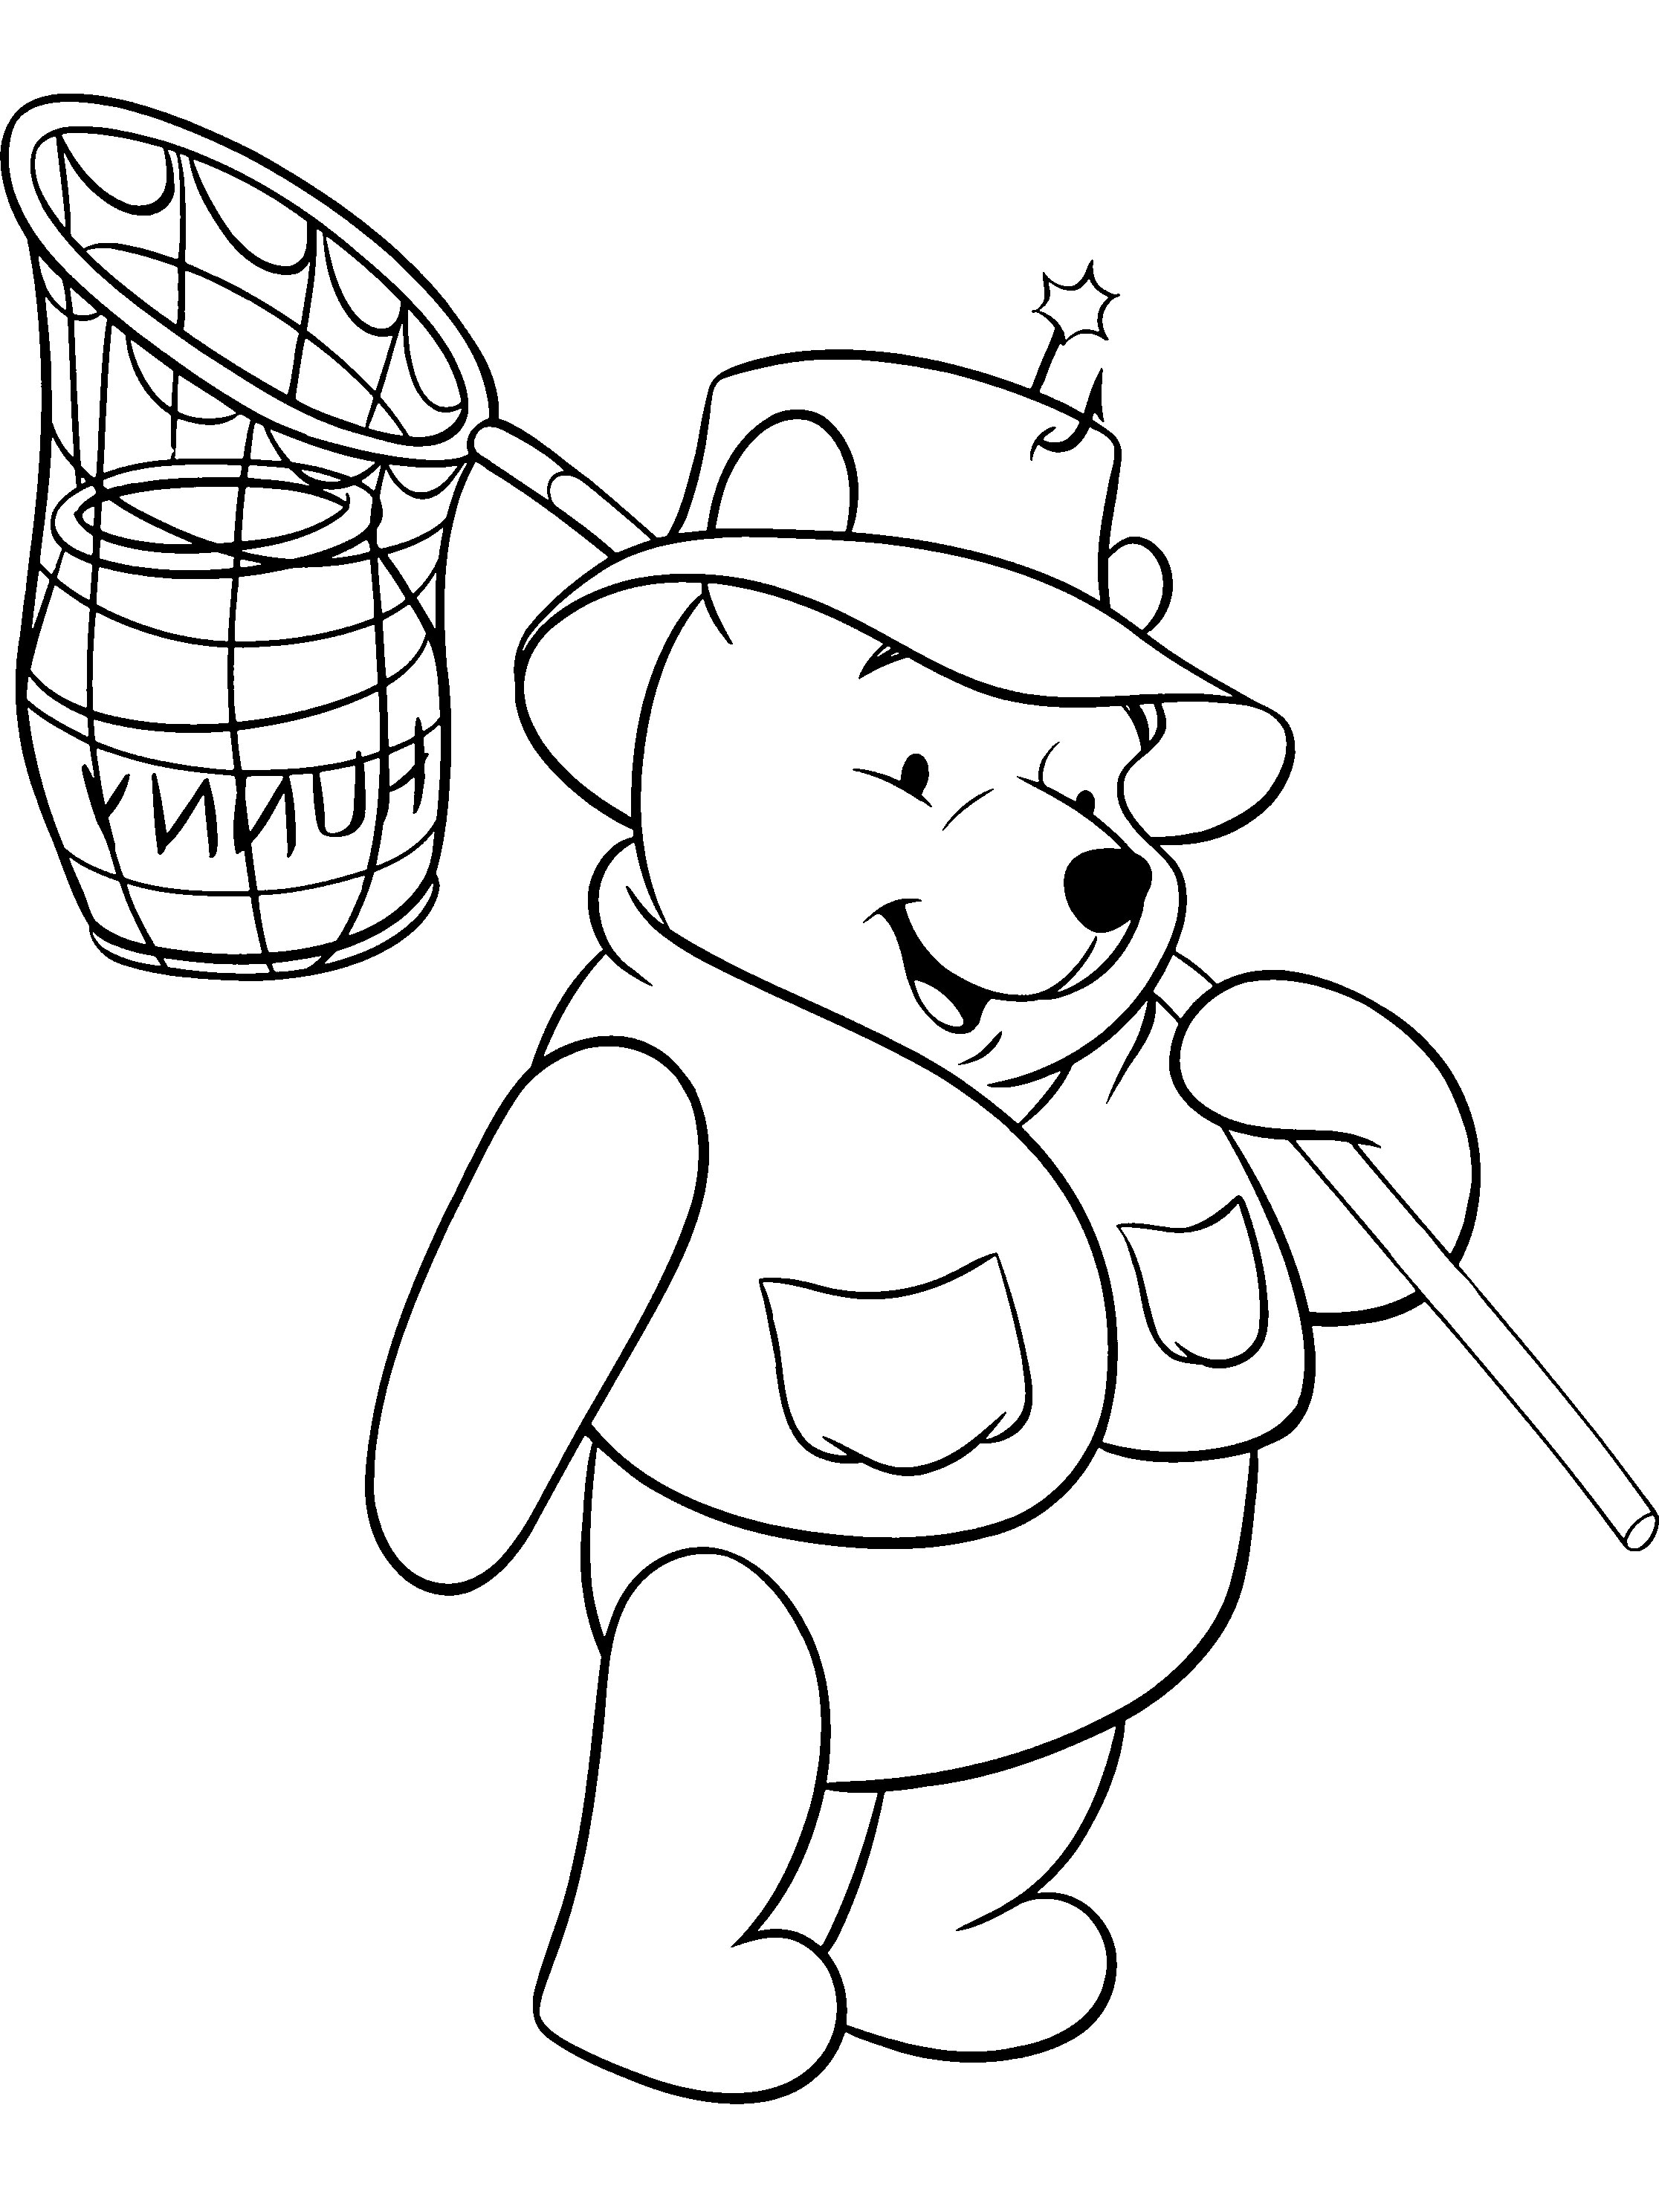 Printable Winnie The Pooh Coloring Pages for Kids